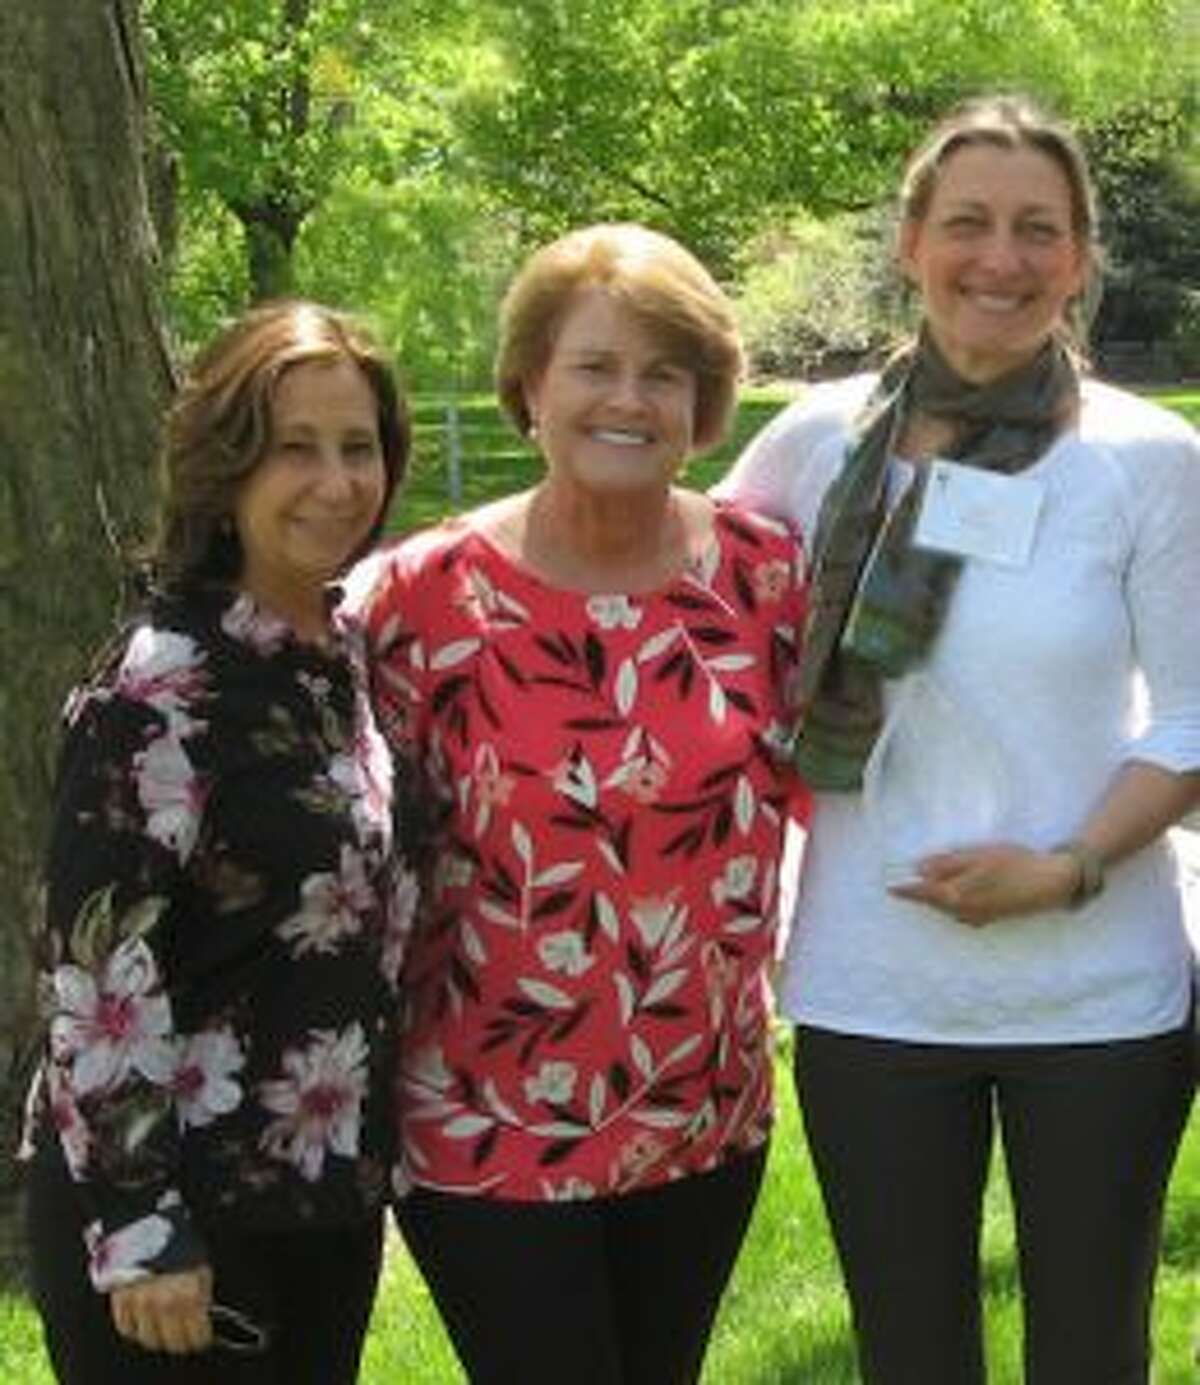 Deb Rackich of Redding, right, won the 2019 Carol Bauer Spirit Award, given by Visiting Nurse & Hospice of Fairfield County. She is joined by the agency's outgoing volunteer coordinator, Laurie Petrasanta, left, and Jennifer Toll of Wilton, Carol Bauer's daughter.